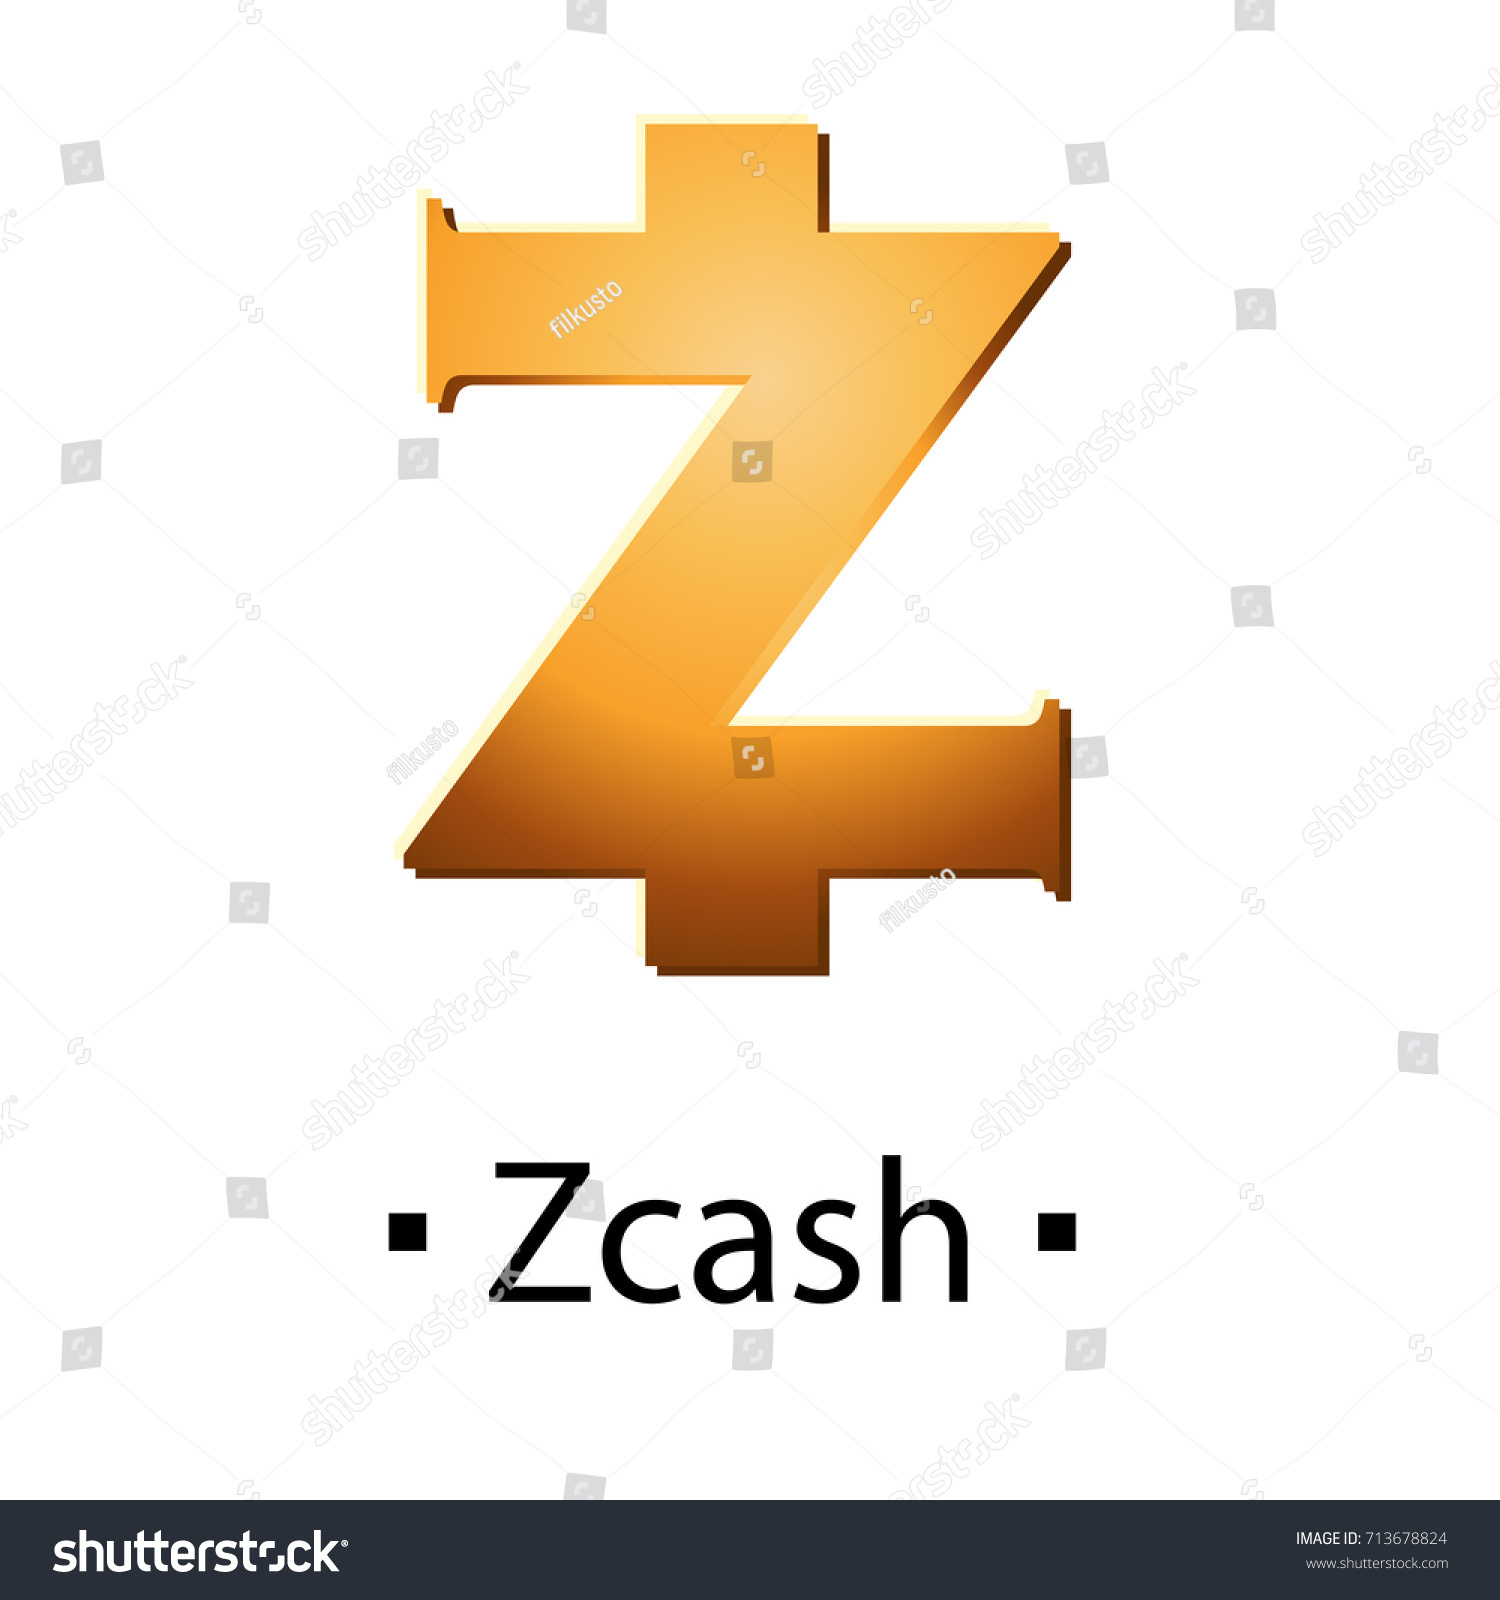 Zcash Cryptocurrency Golden Icon Vector Illustration Isolated On White Background